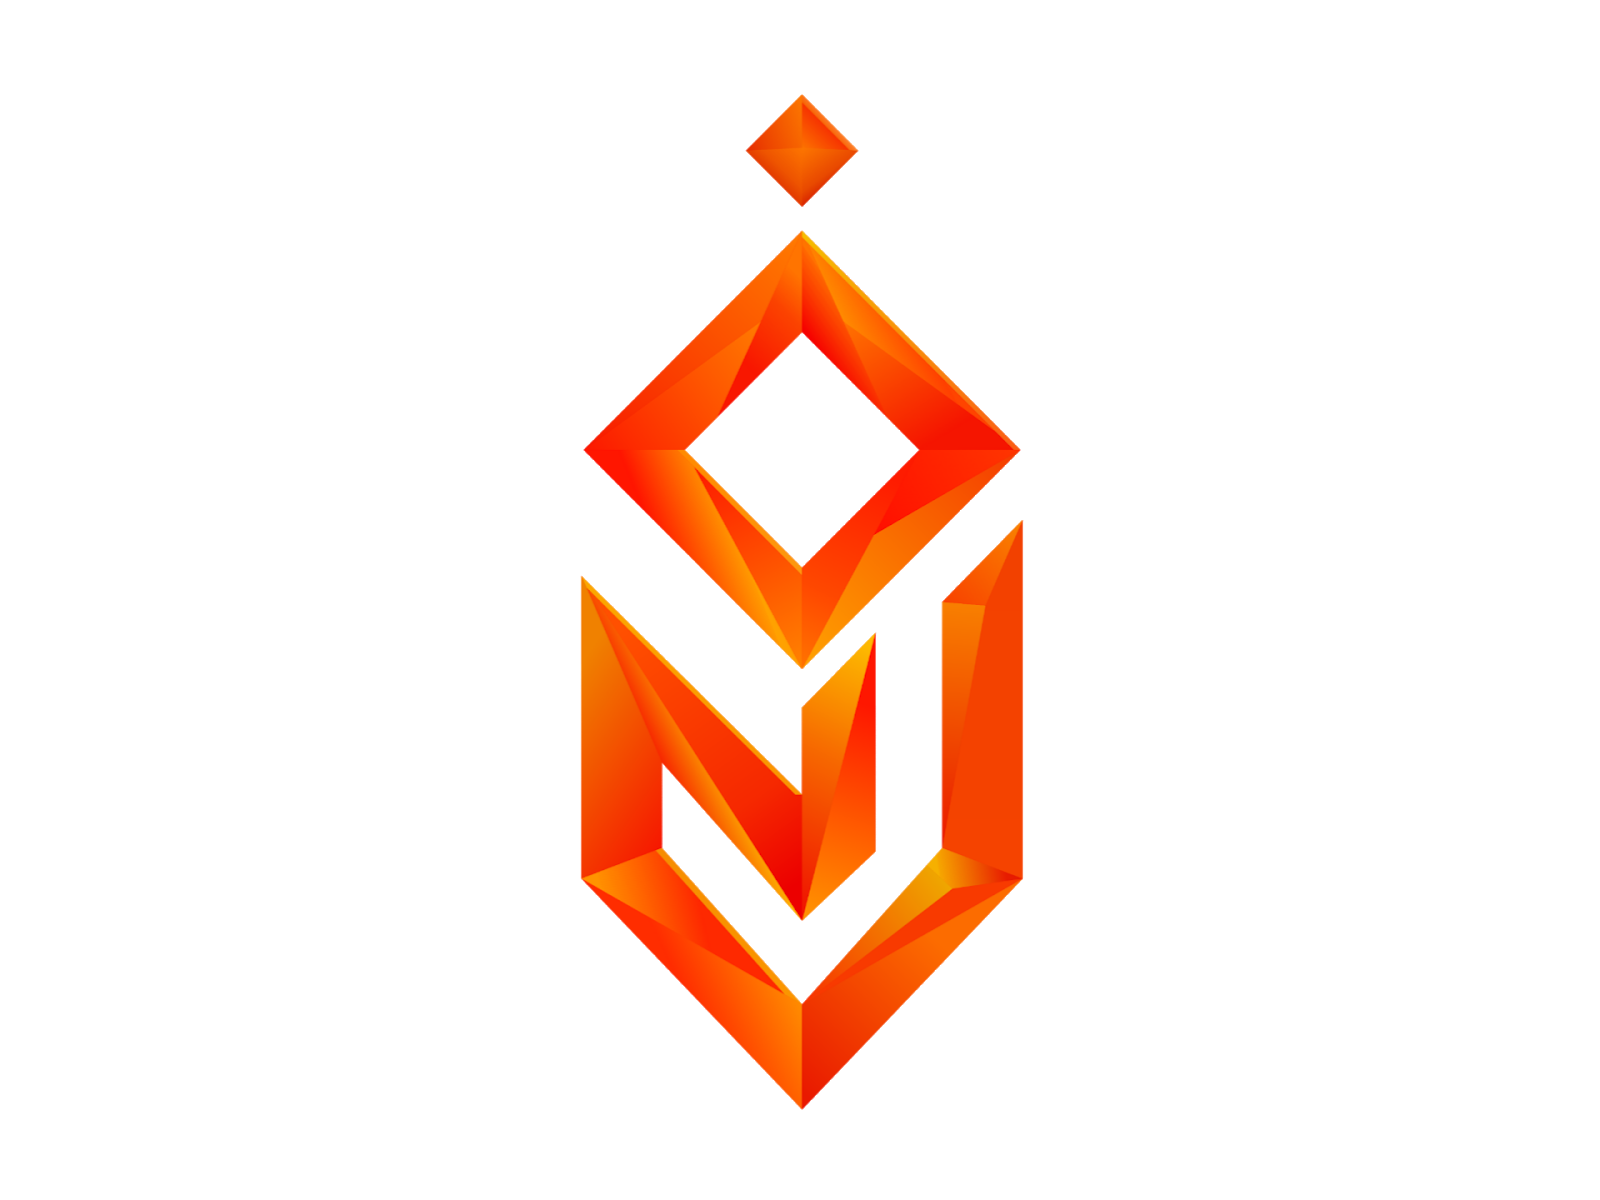 Logo Voin Esports Format PNG